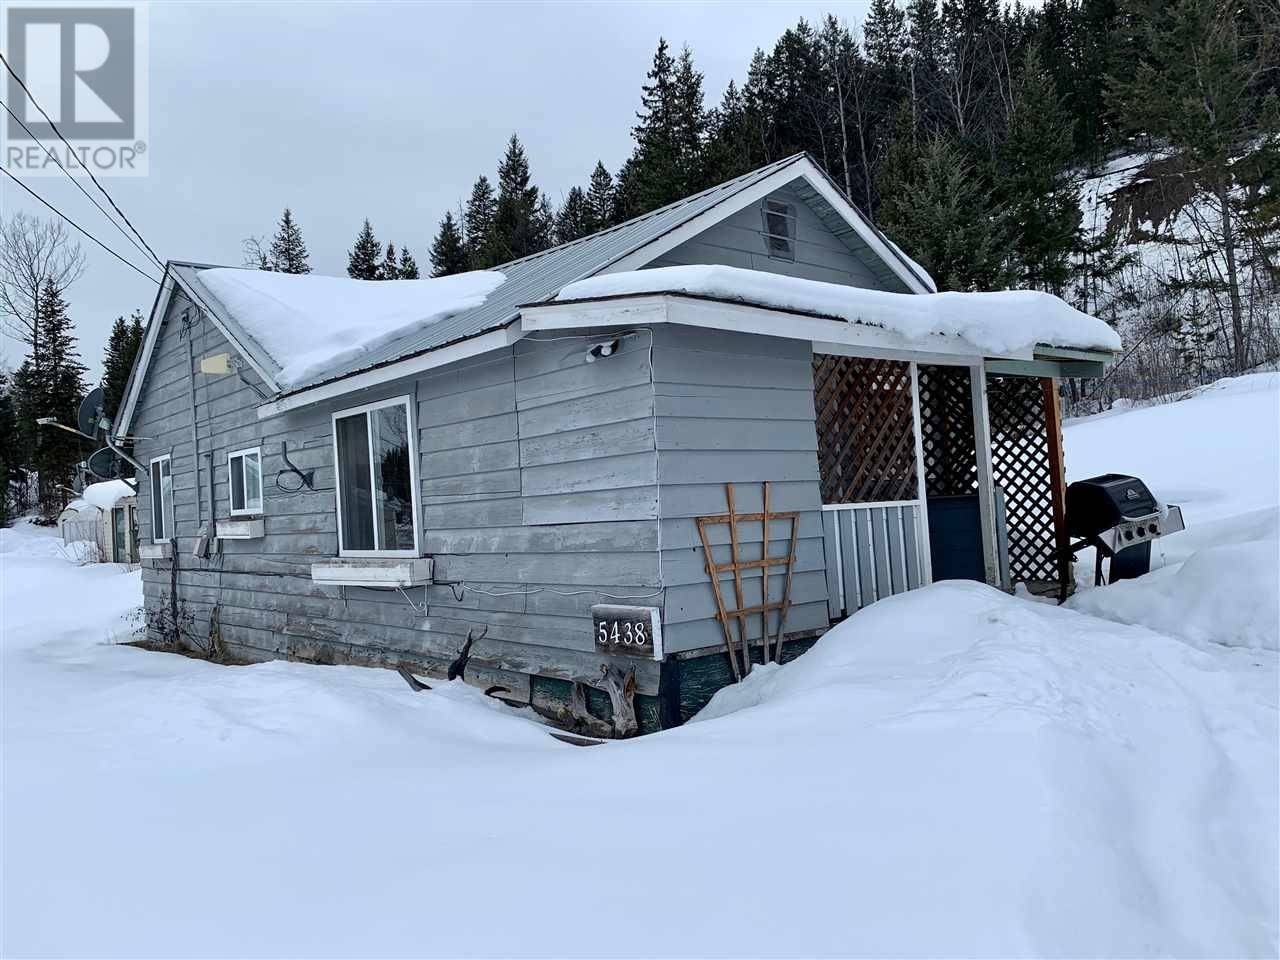 House for sale at 5438 Kennedy Rd 100 Mile House British Columbia - MLS: R2441938